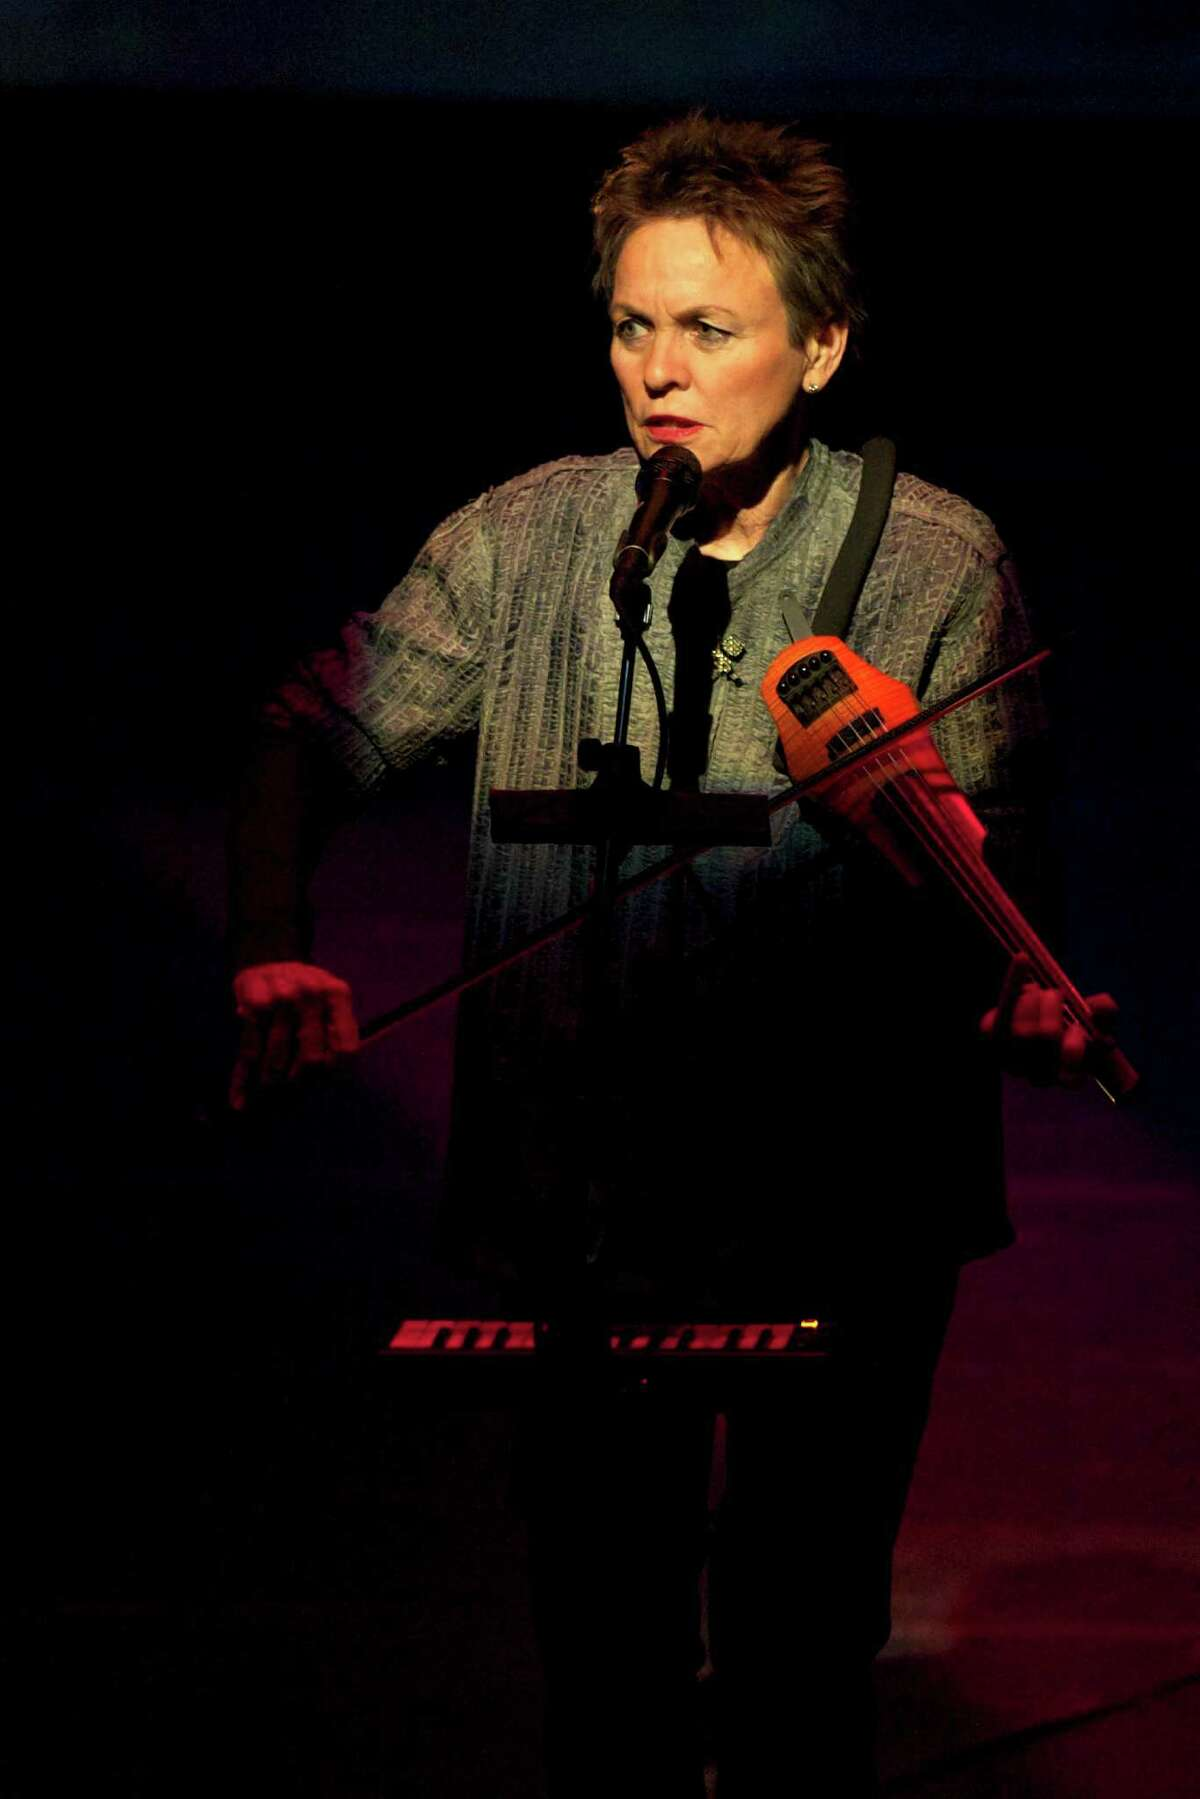 Laurie Anderson performing in 2010 (Lou Reed/Barbican Centre via Bloomberg).